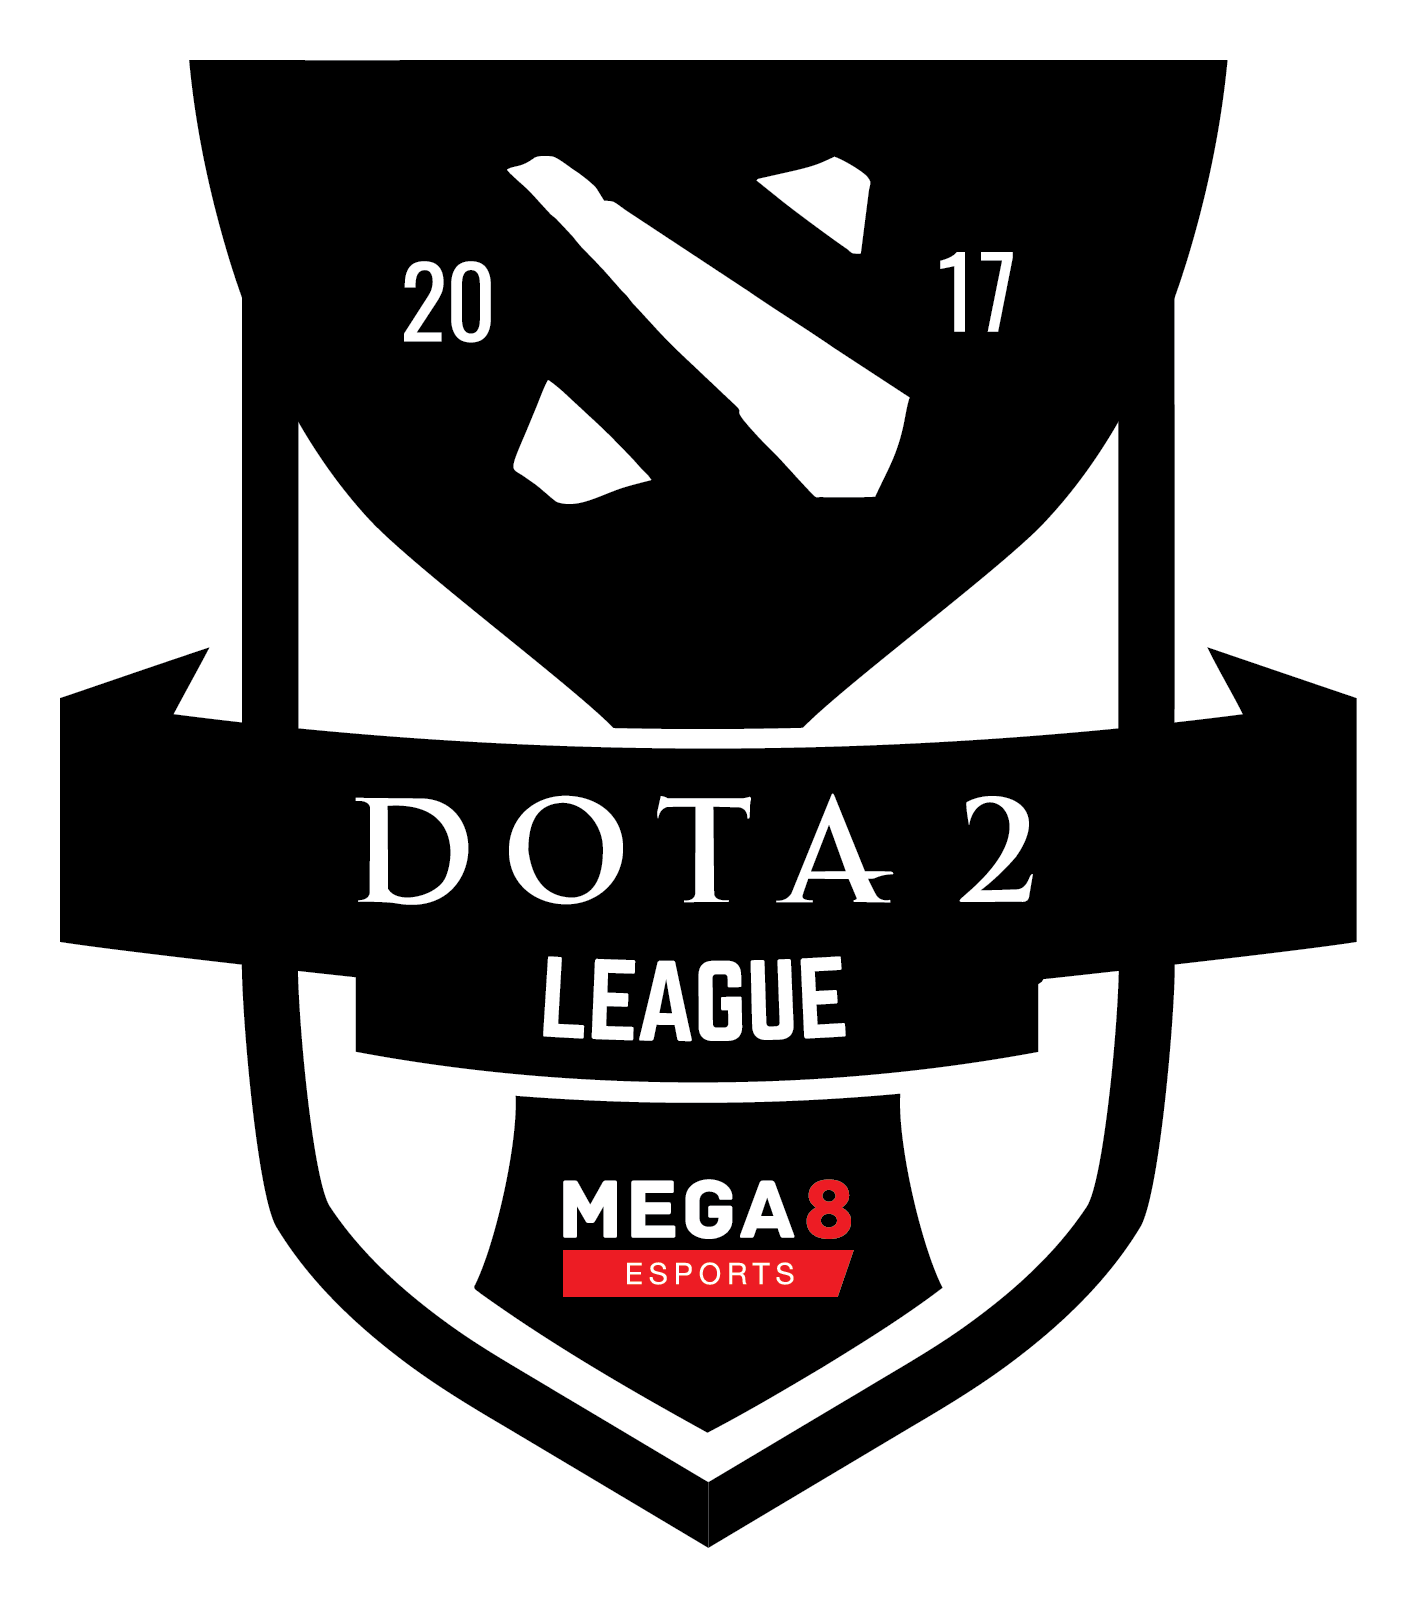 The Mega8 Pro 16 League